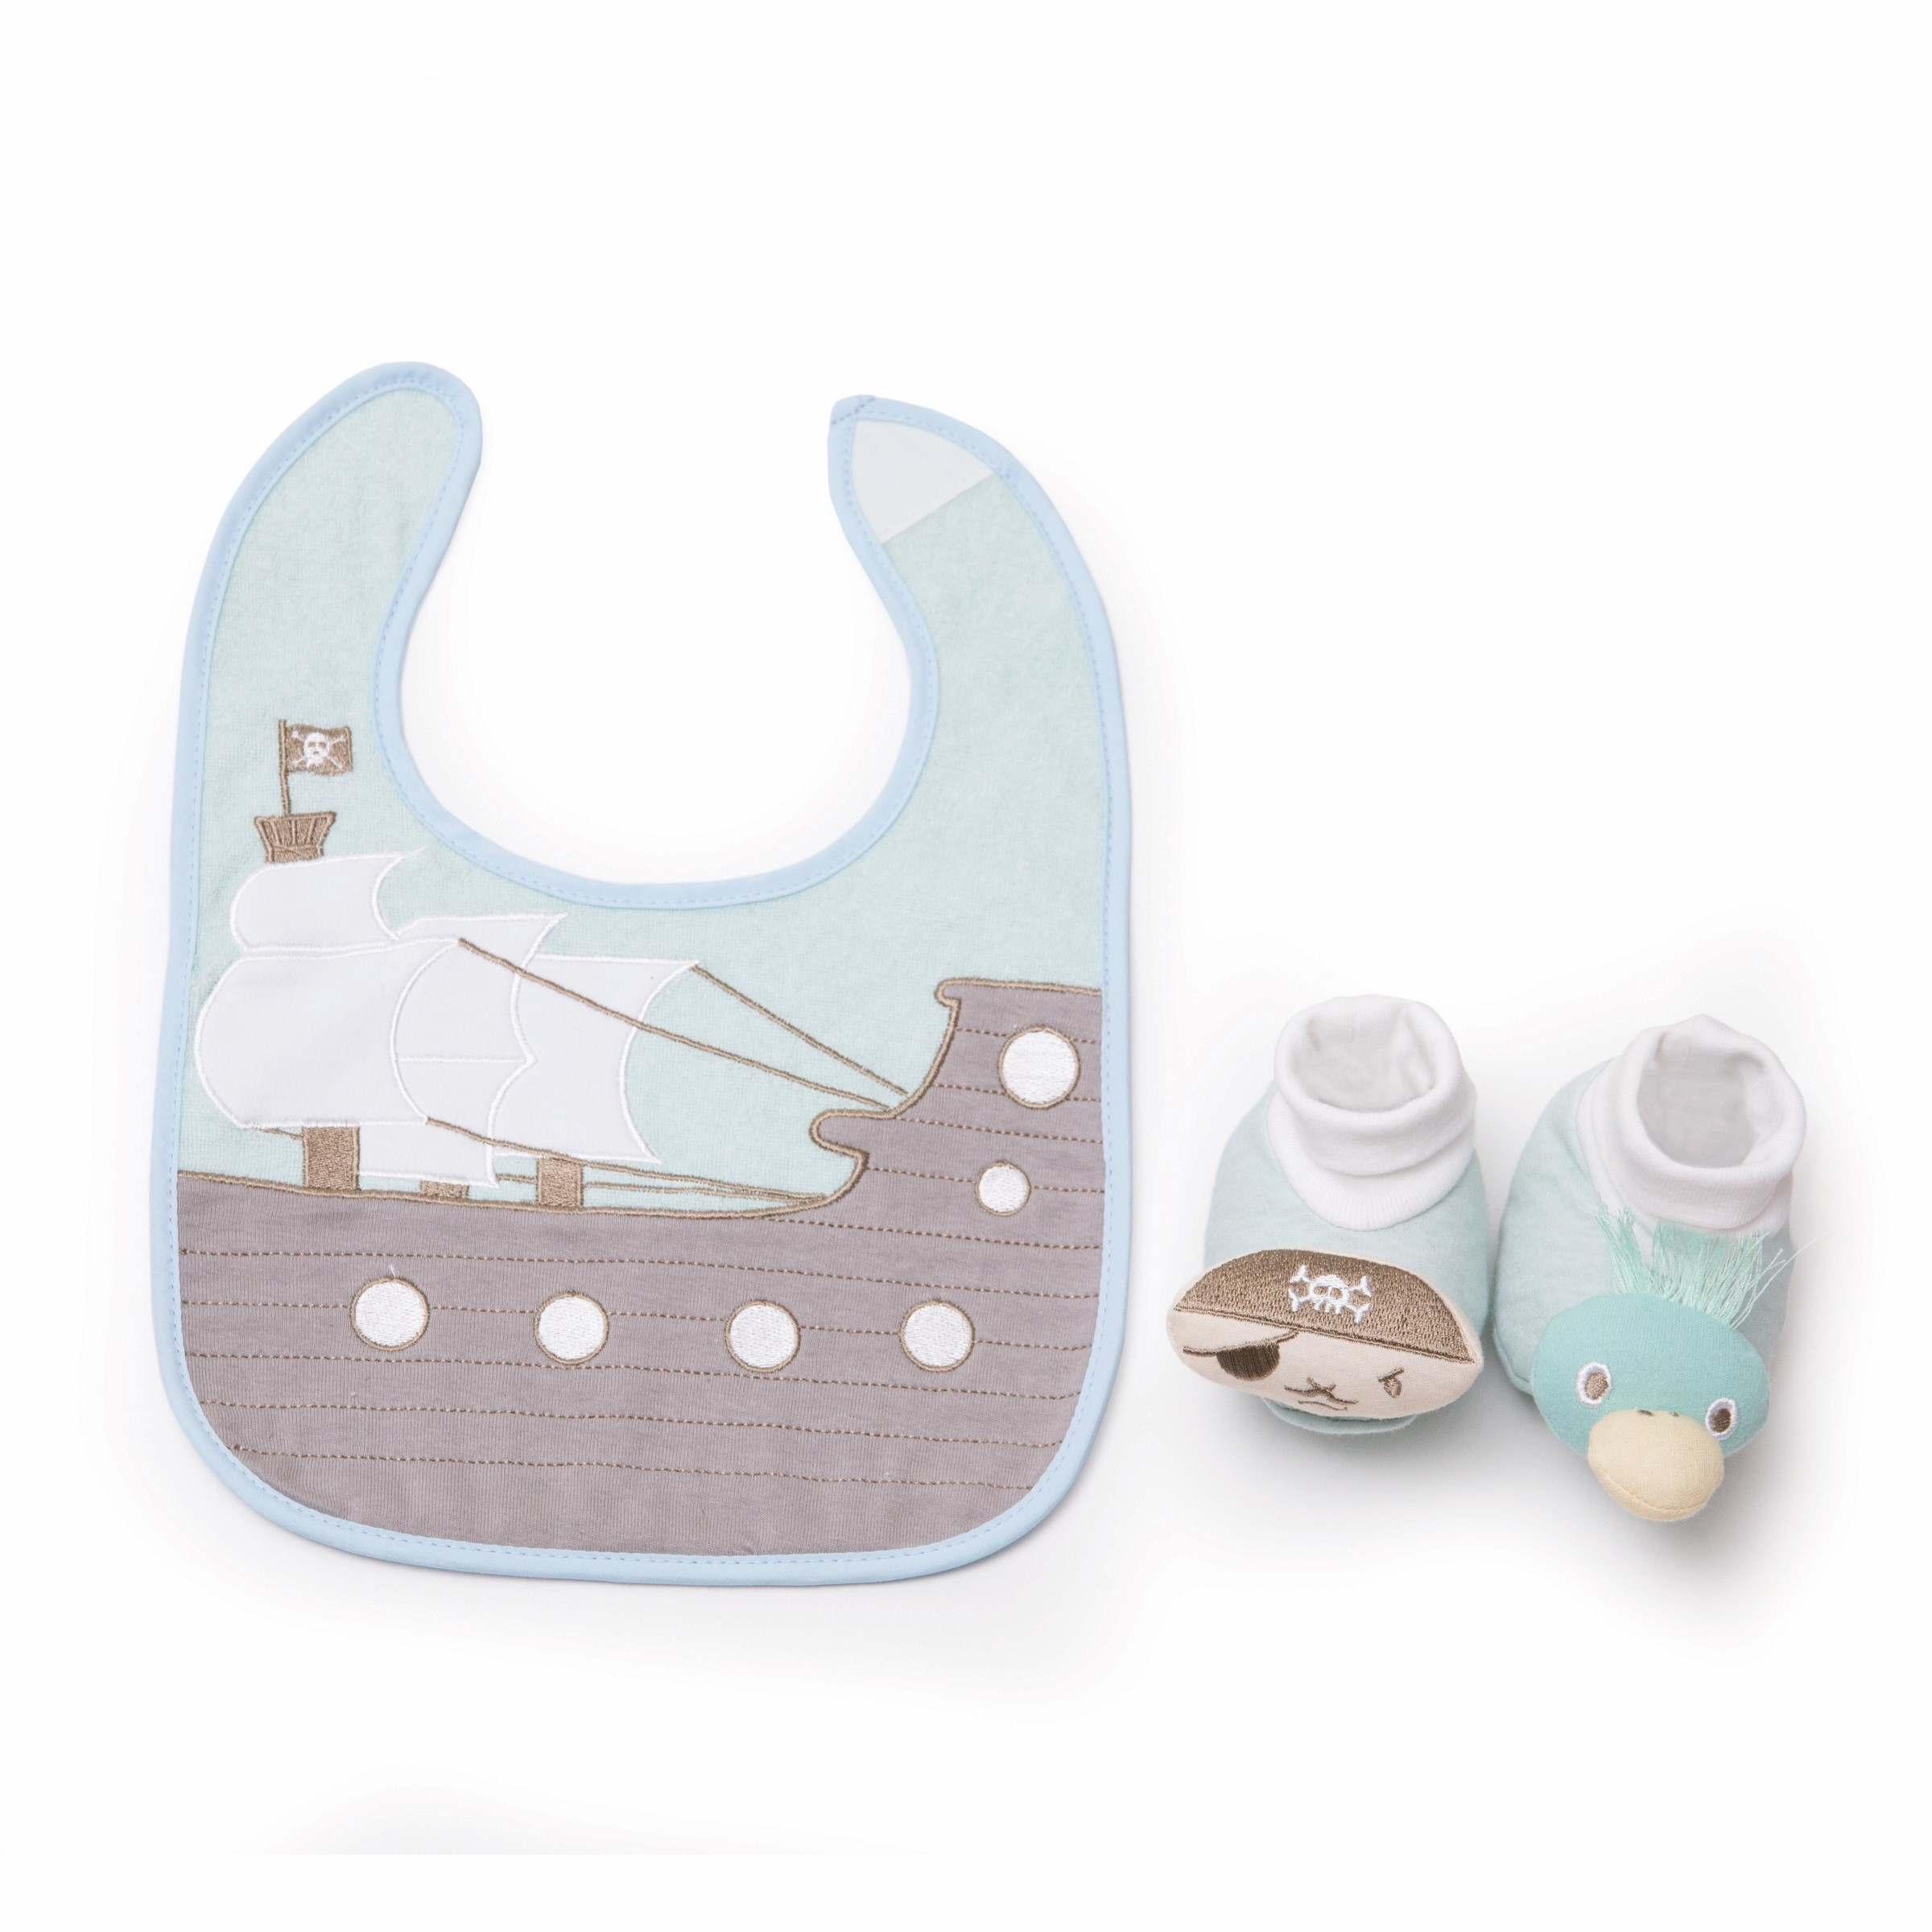 Pirate bib and bootie set